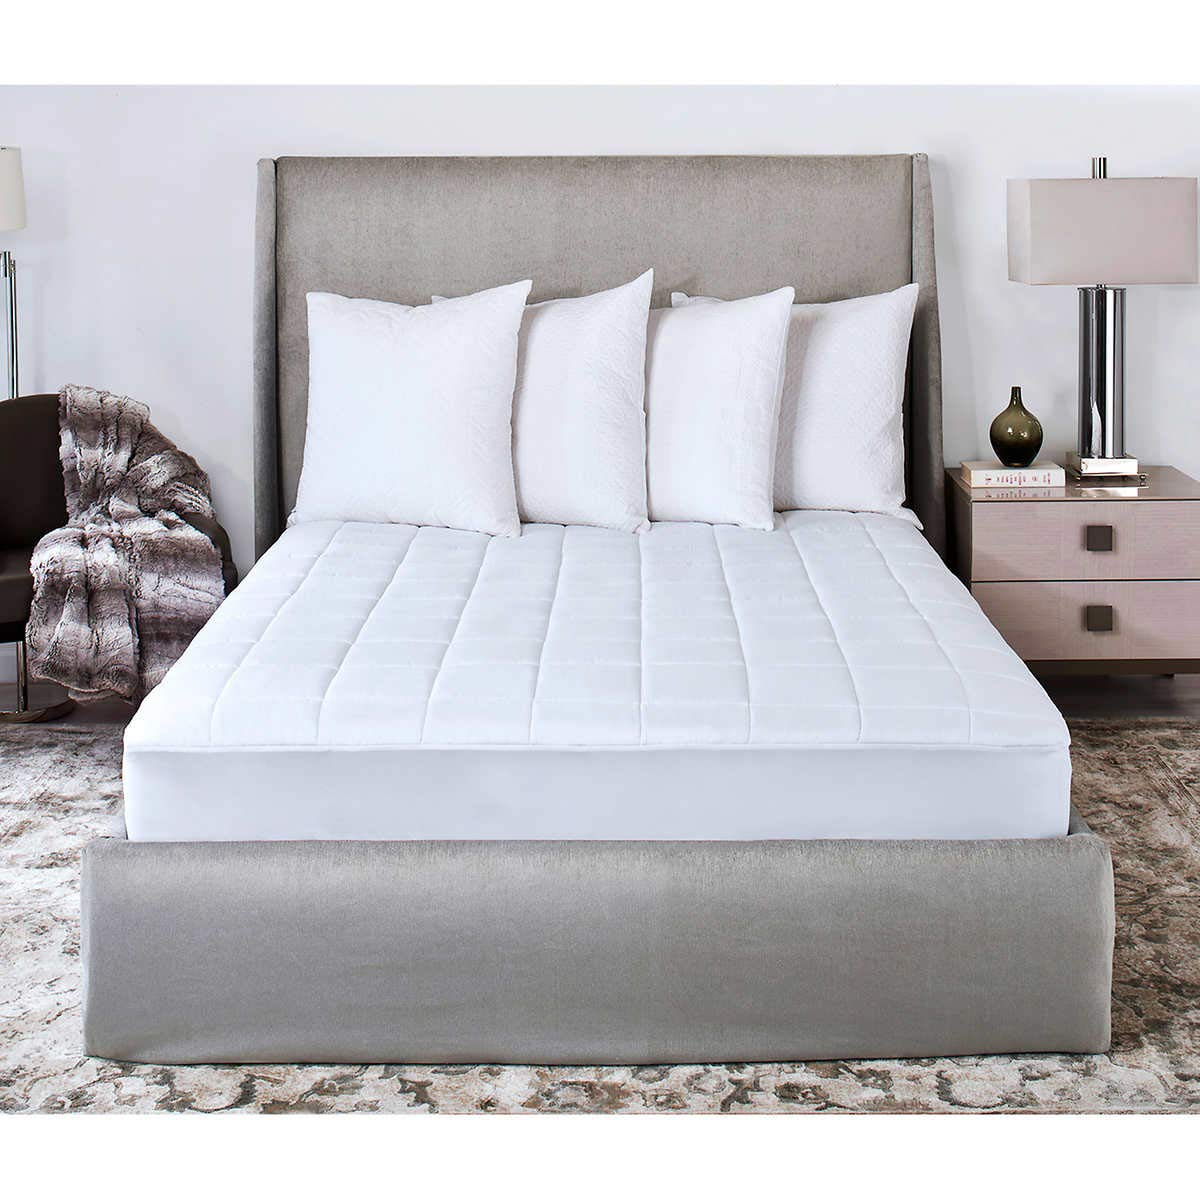 Sunbeam SelectTouch Premium Electric Mattress